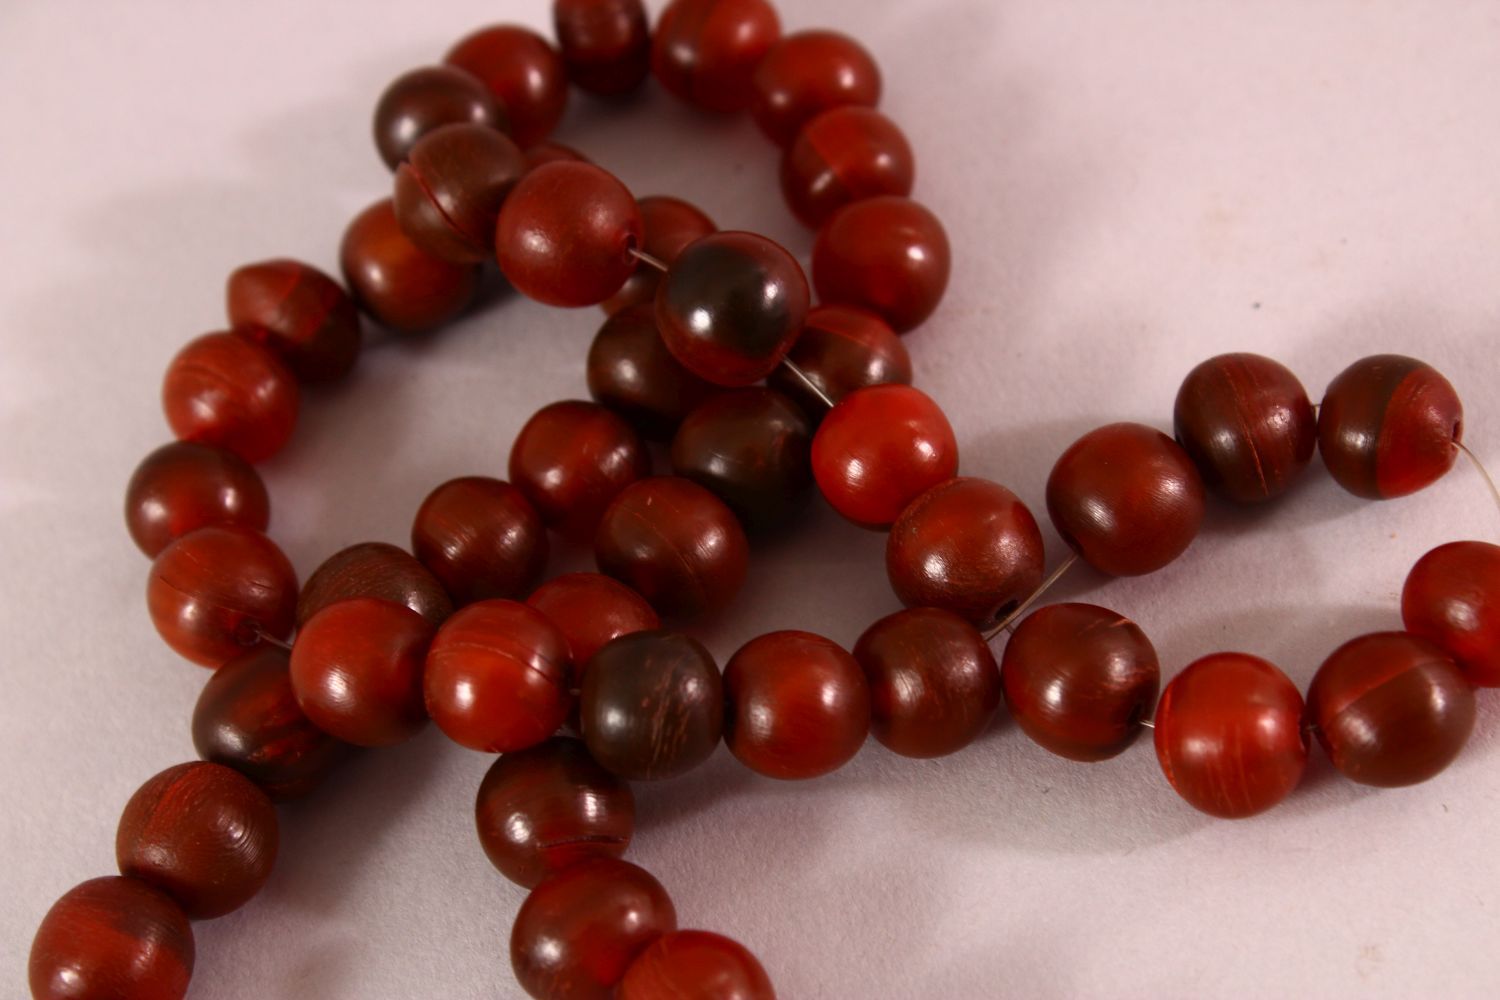 A RHINO HORN BEAD NECKLACE, beads approx 10mm diameter, weight 65g. - Image 2 of 3